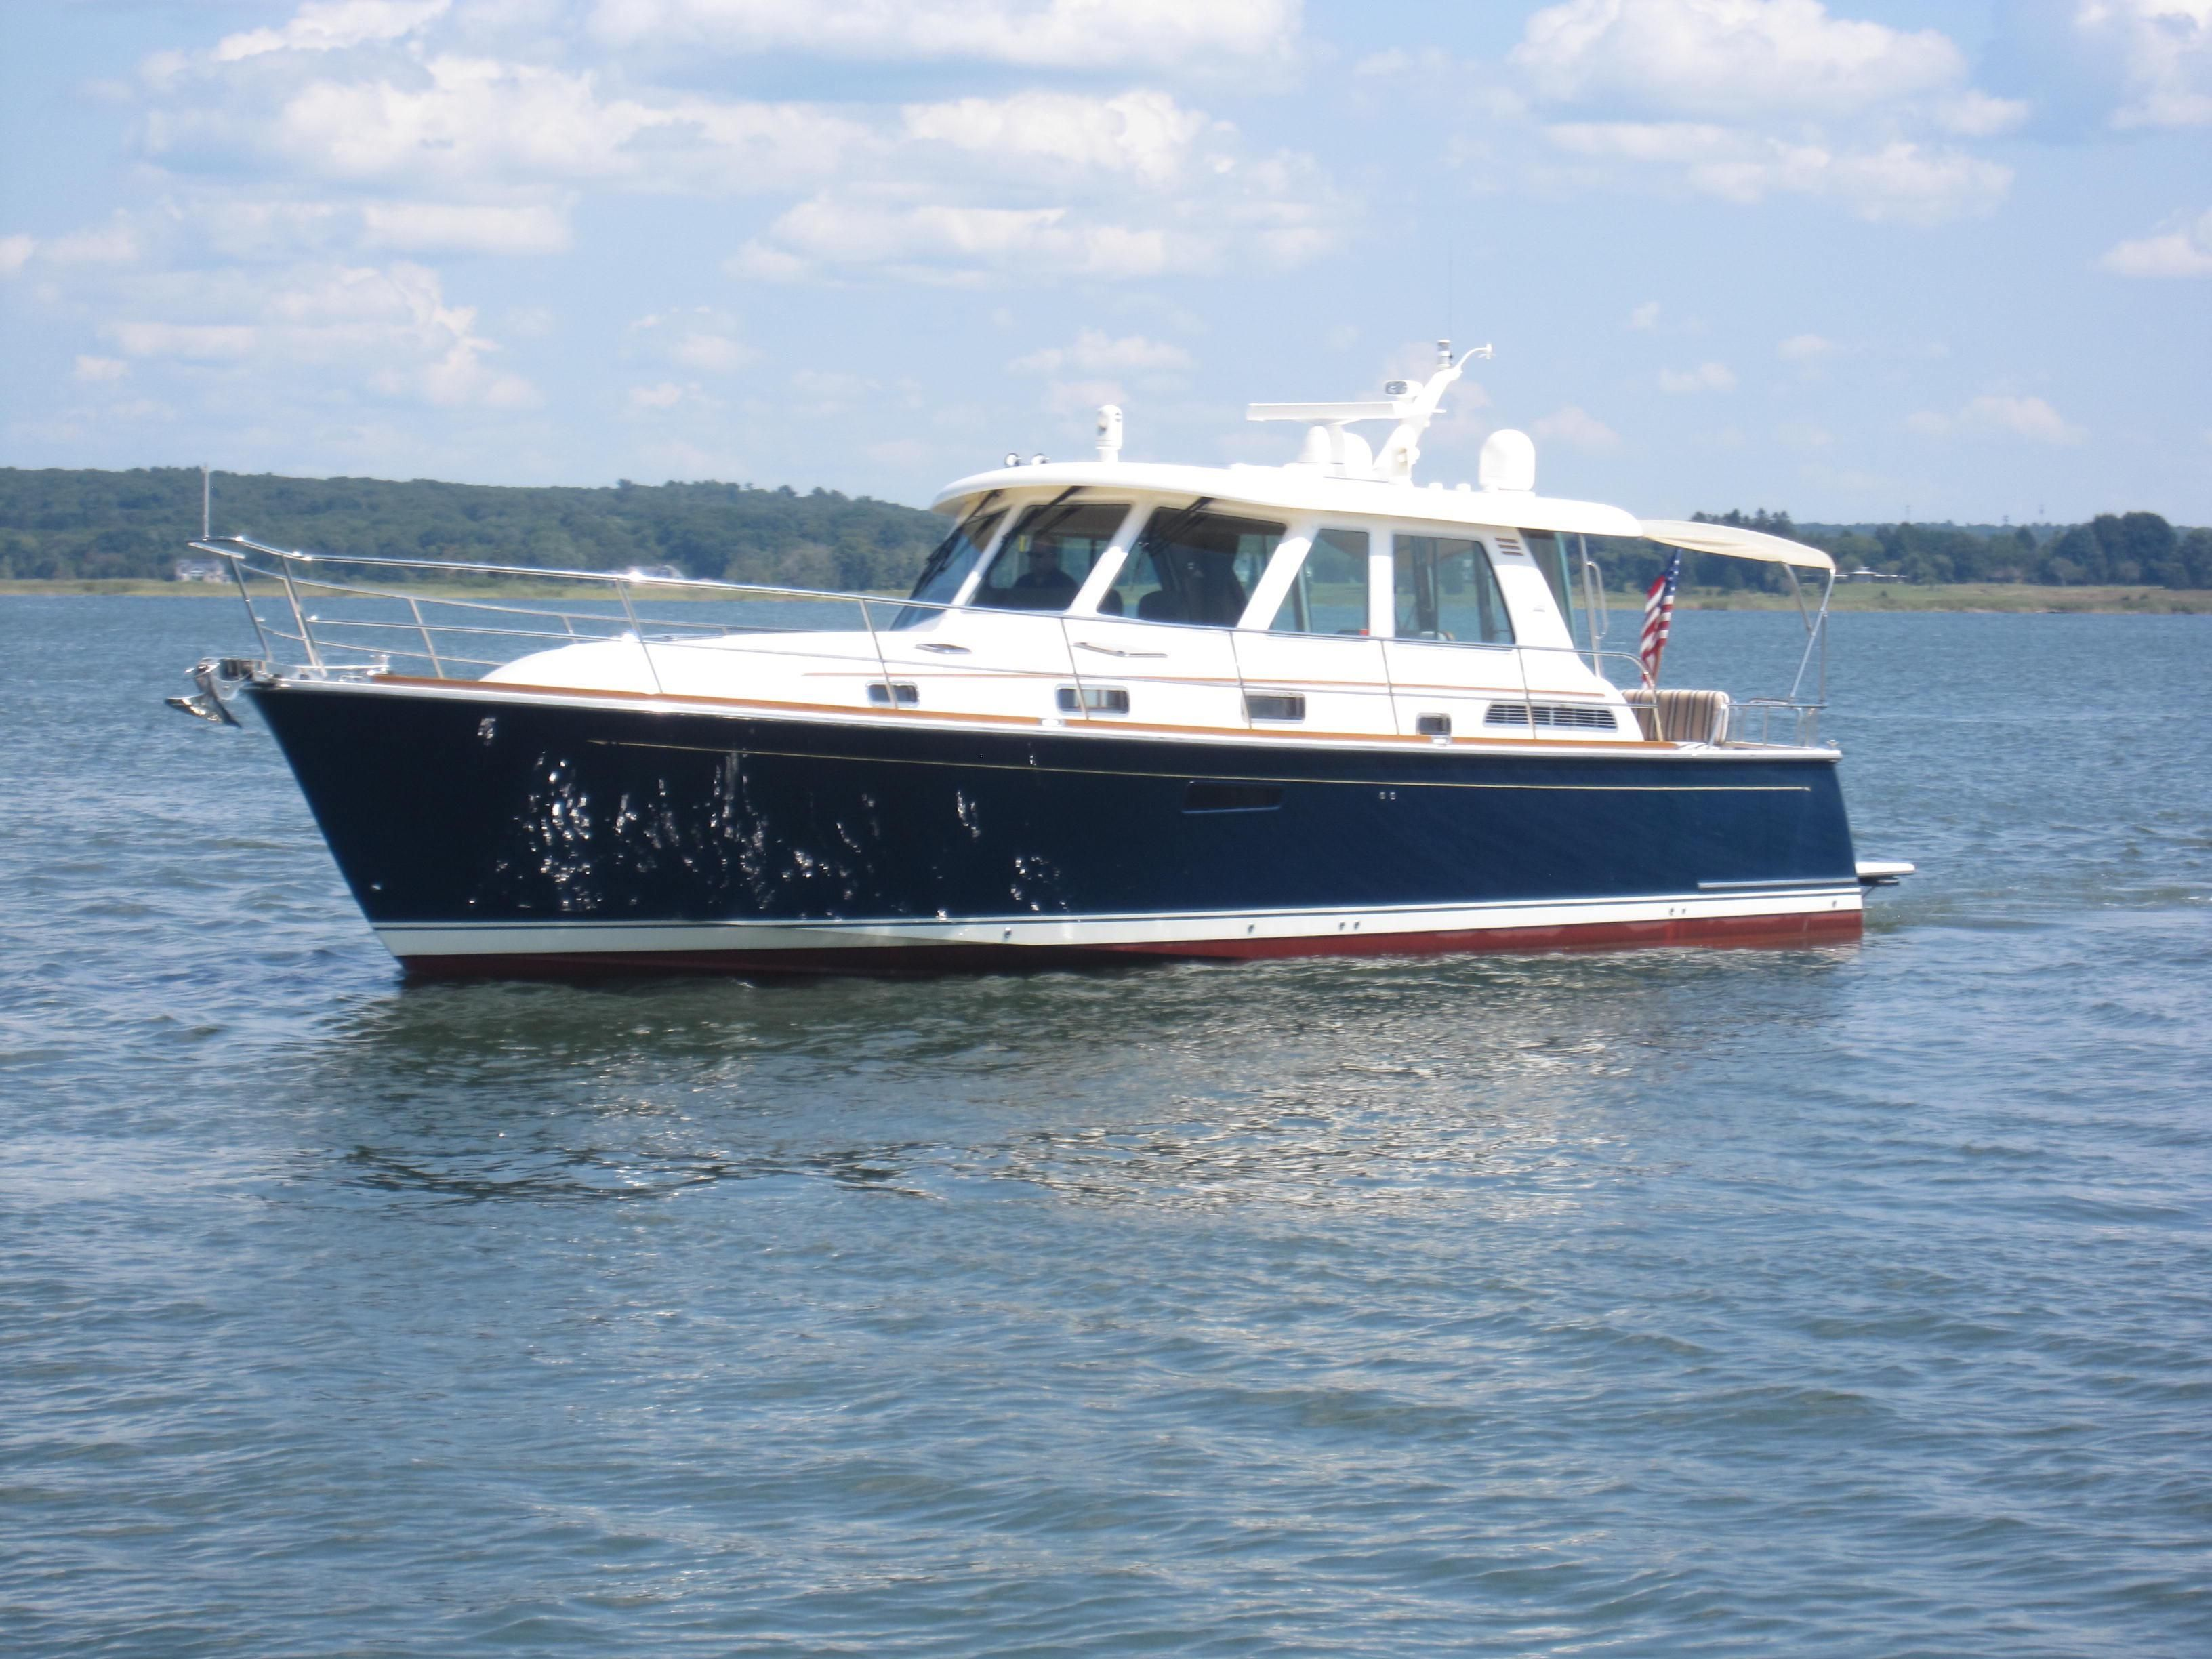 2013 Sabre 48 Salon Express Power Boat For Sale - www.yachtworld.com